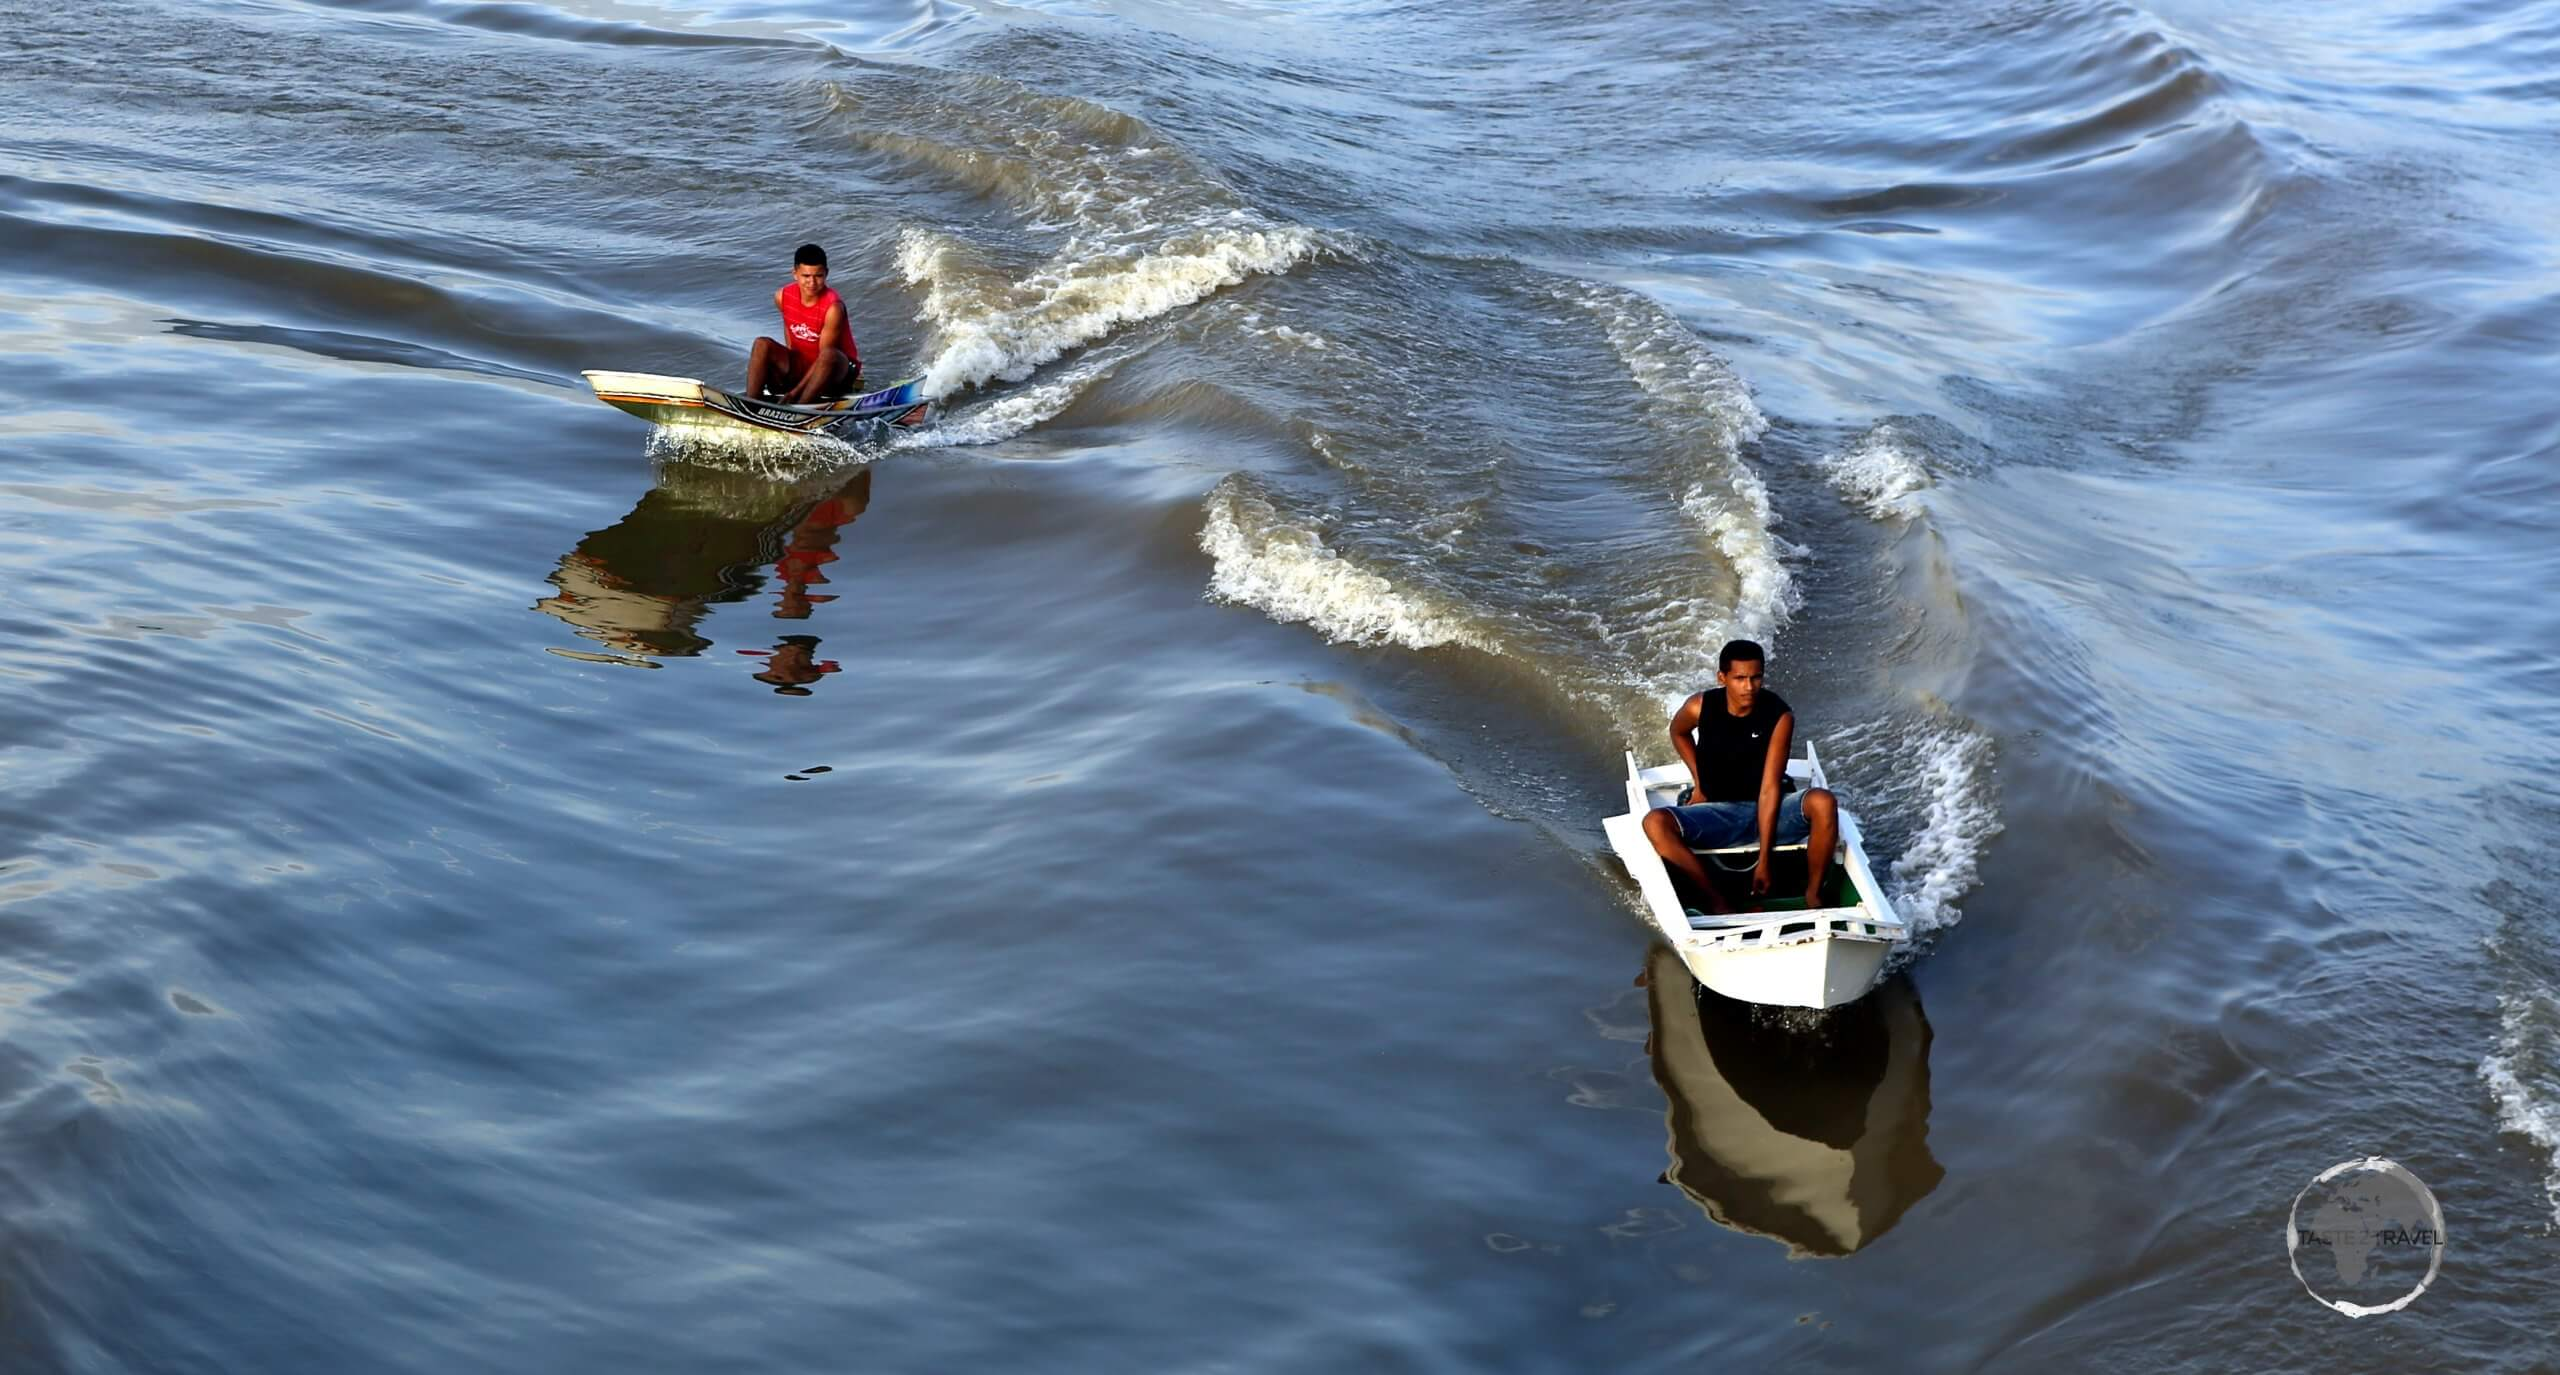 Life on the Amazon river - young villagers speeding alongside our boat in their zippy speedboats.